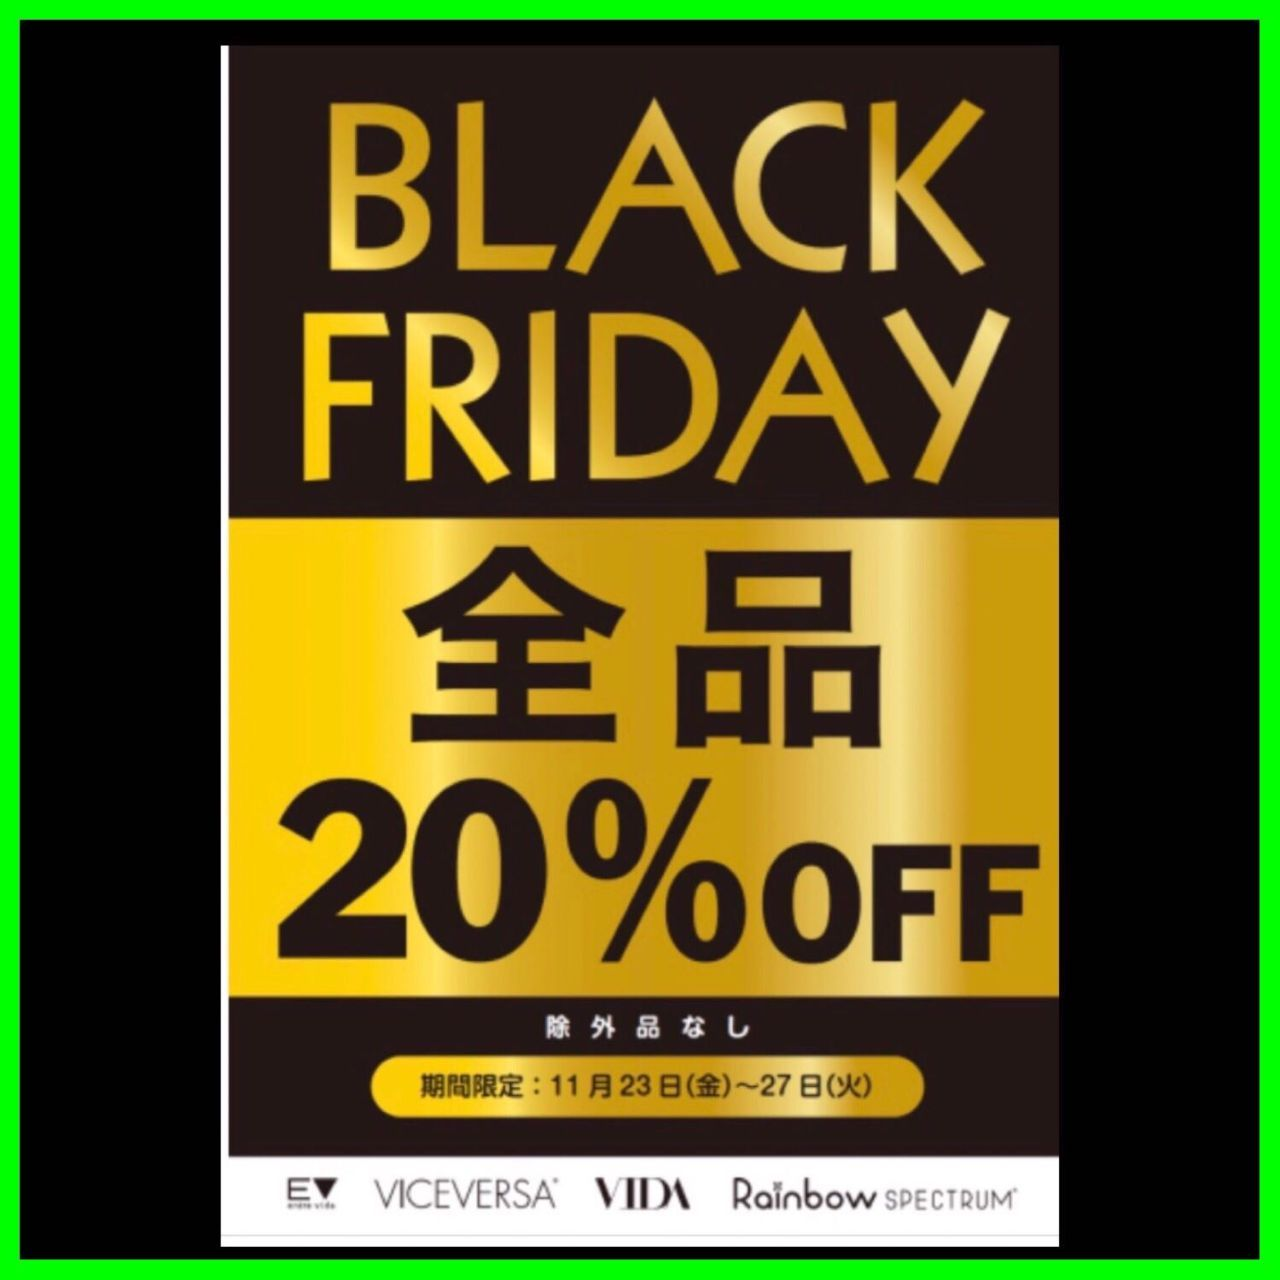 「!! BLACK FRIDAY !!」の写真